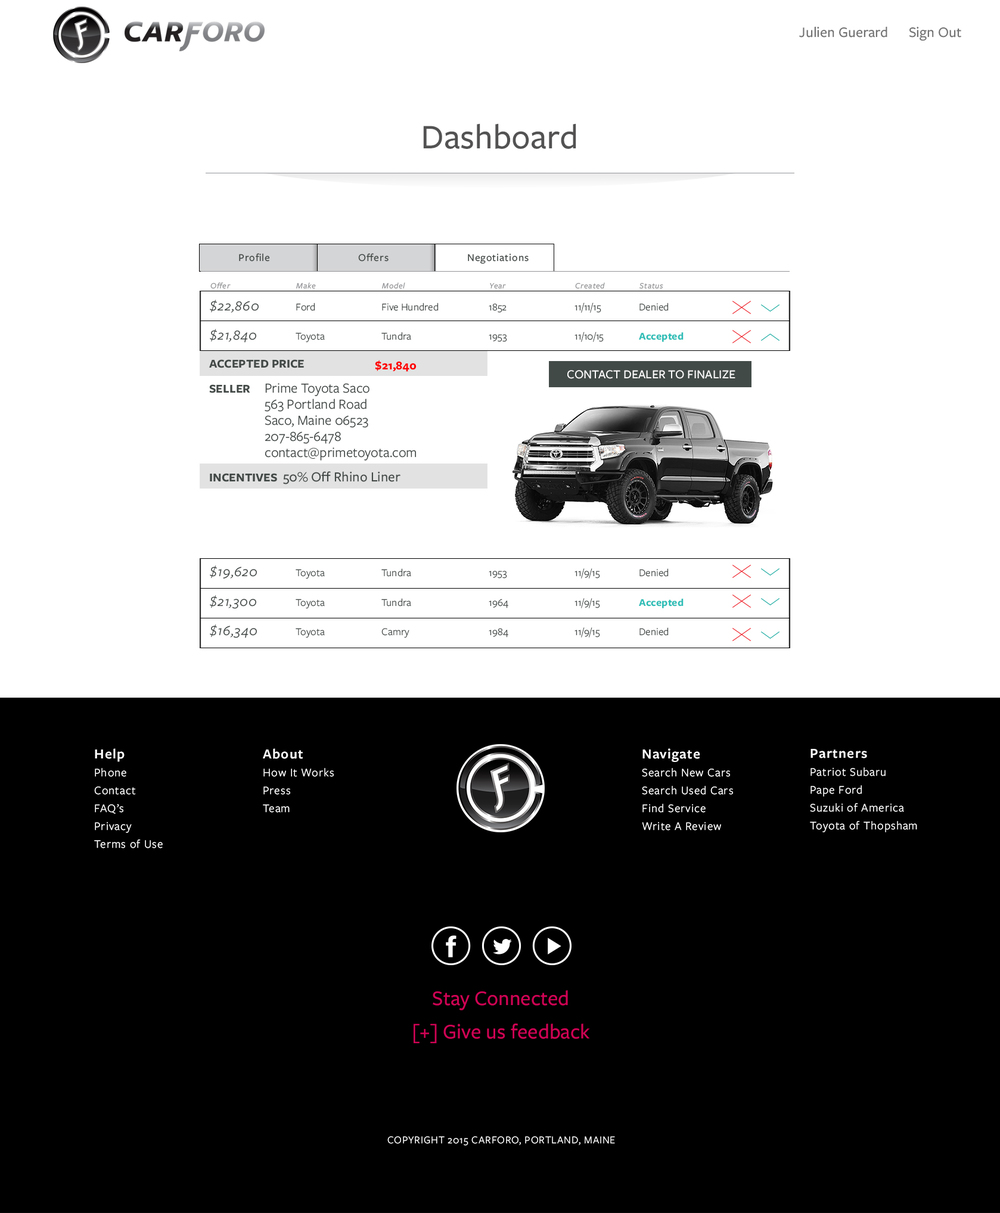 Carforo_Web_Dashboard.Negotiations_Comp_2015_v4.jpg